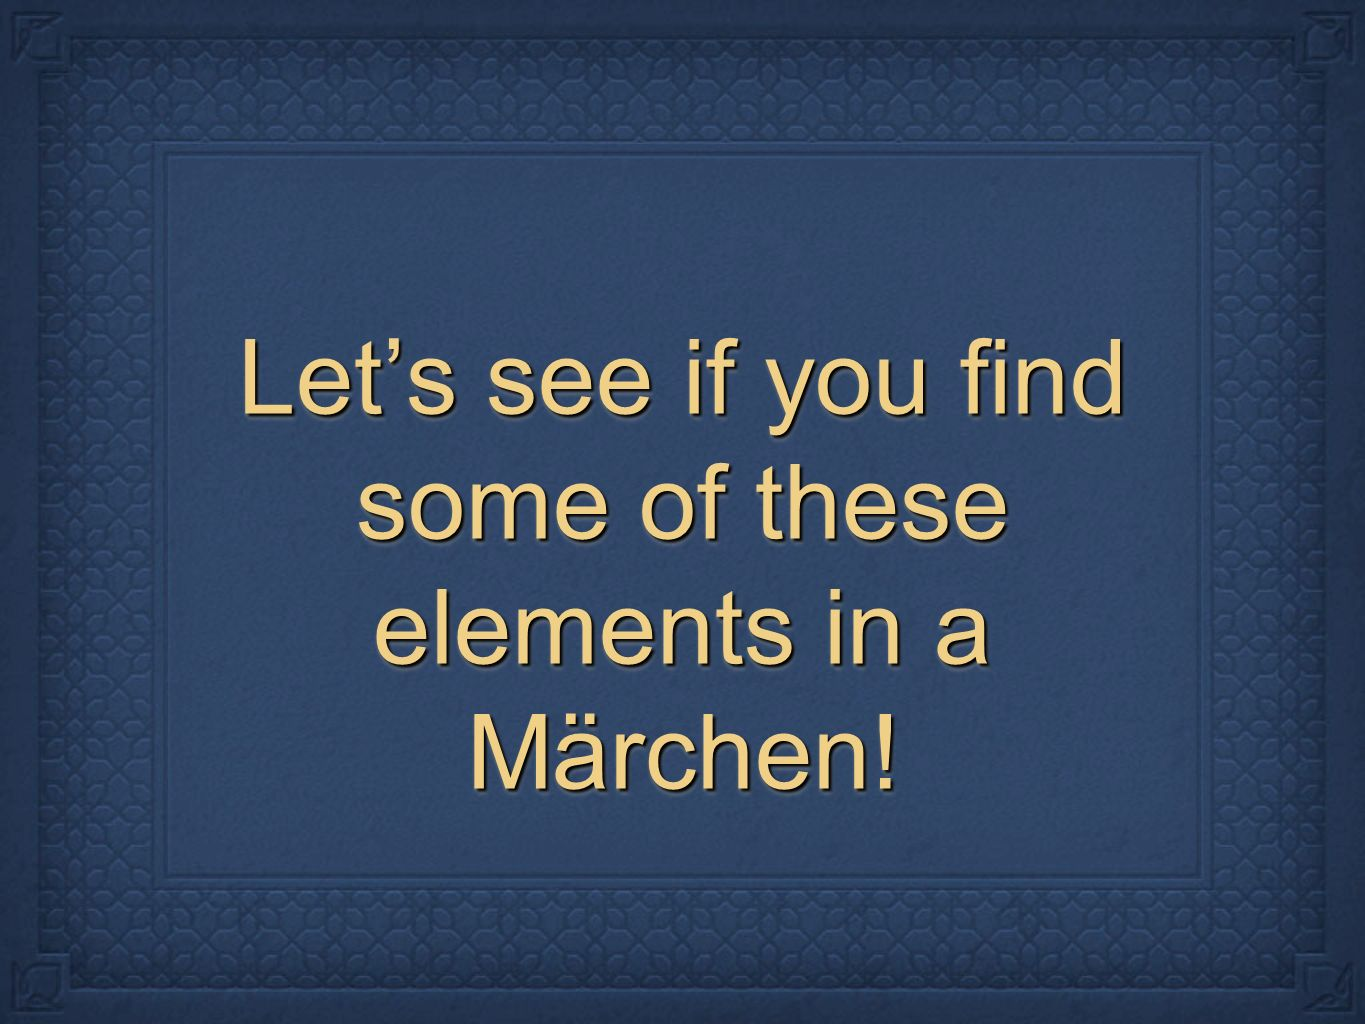 Let's see if you find some of these elements in a Märchen!